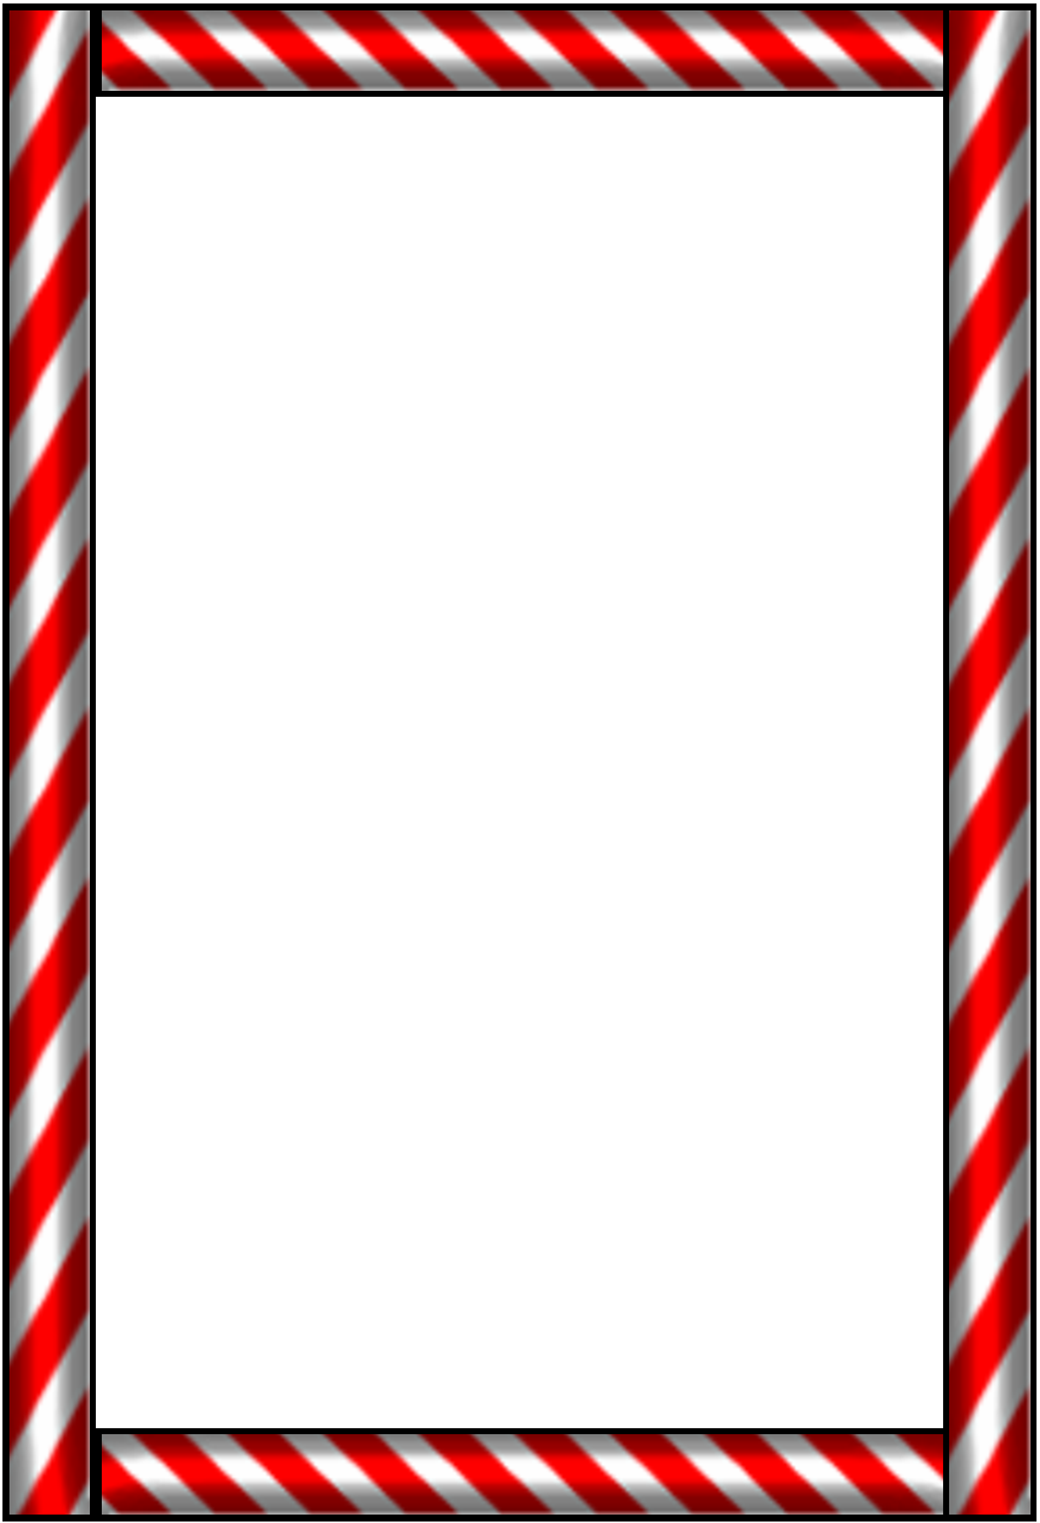 Candy cane pole clipart jpg library library Peppermint Border Cliparts | Free download best Peppermint Border ... jpg library library